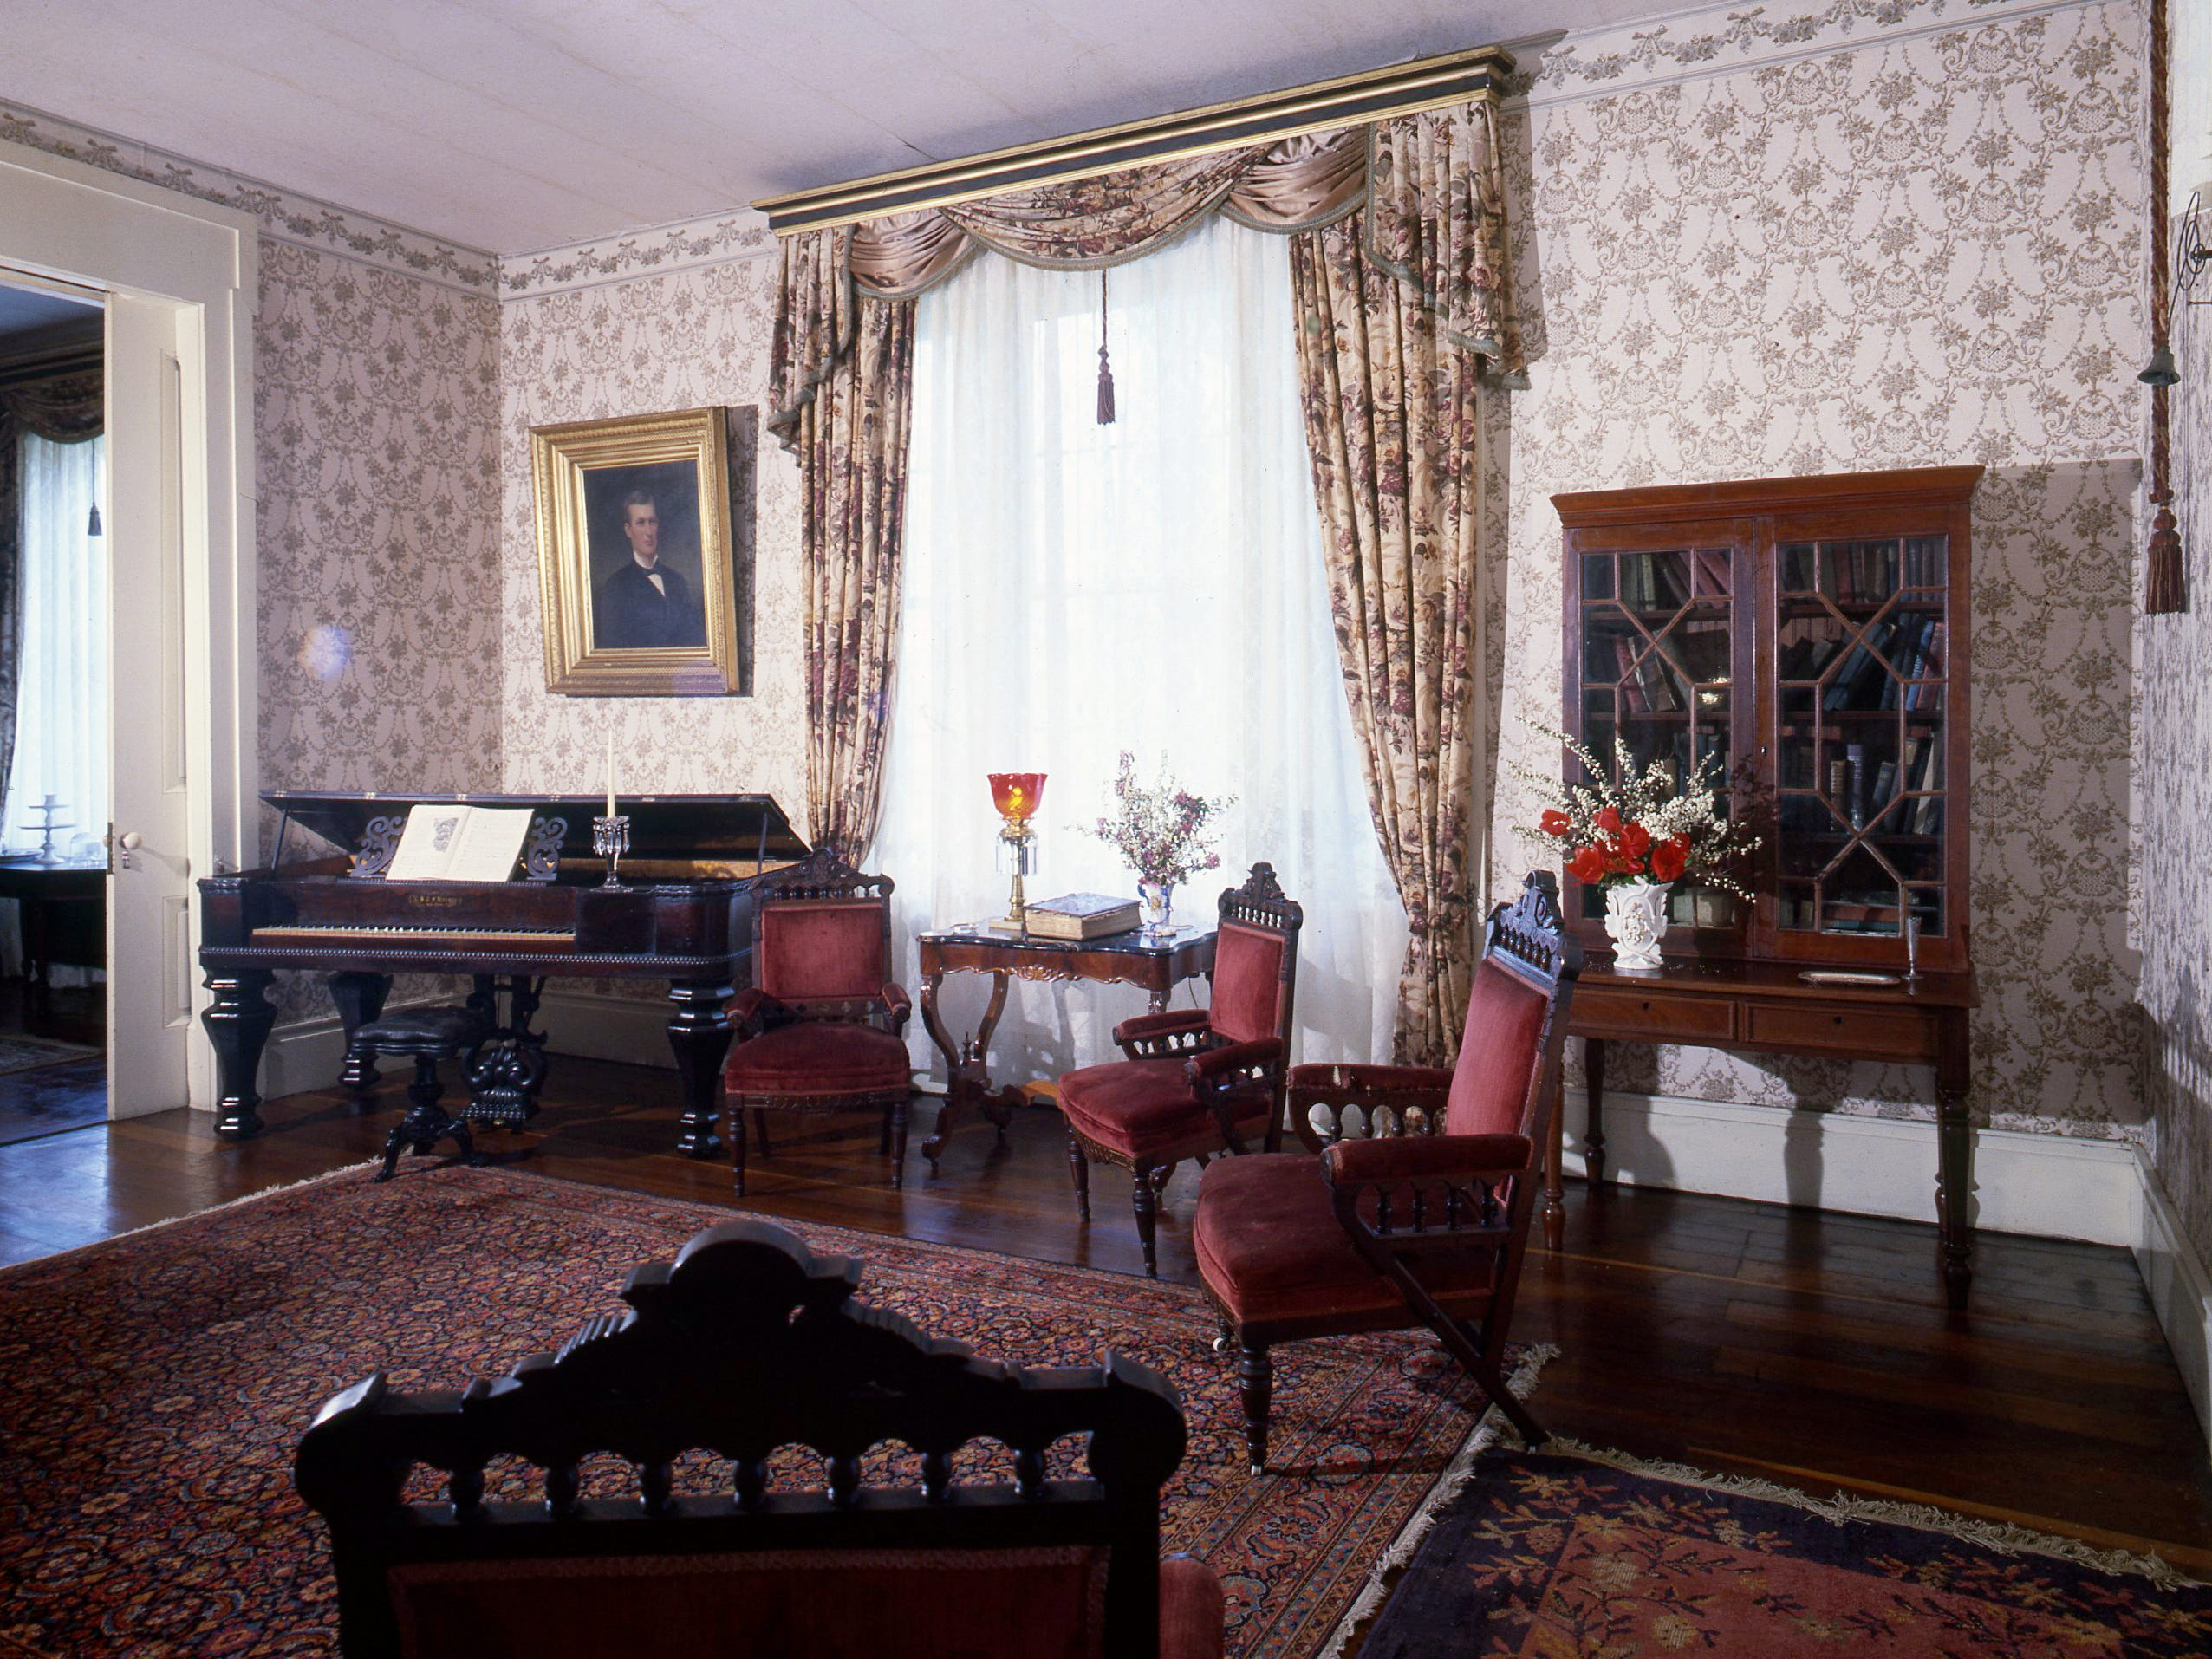 """The living room of the """"Rosemont"""" home, pictured here on April 12, 1979, still has its original furniture and decorative accessories from when it was built and completed in 1842 by Judge Jo Conn Guild. The velvet-upholstered Victorian chairs and square piano hark back to the early days of the house. The portrait on the left is of Walter J. Guild, son of the first owner, who was injured in the Civil War and died young. The portrait was painted by Nicola Marshall in 1880."""